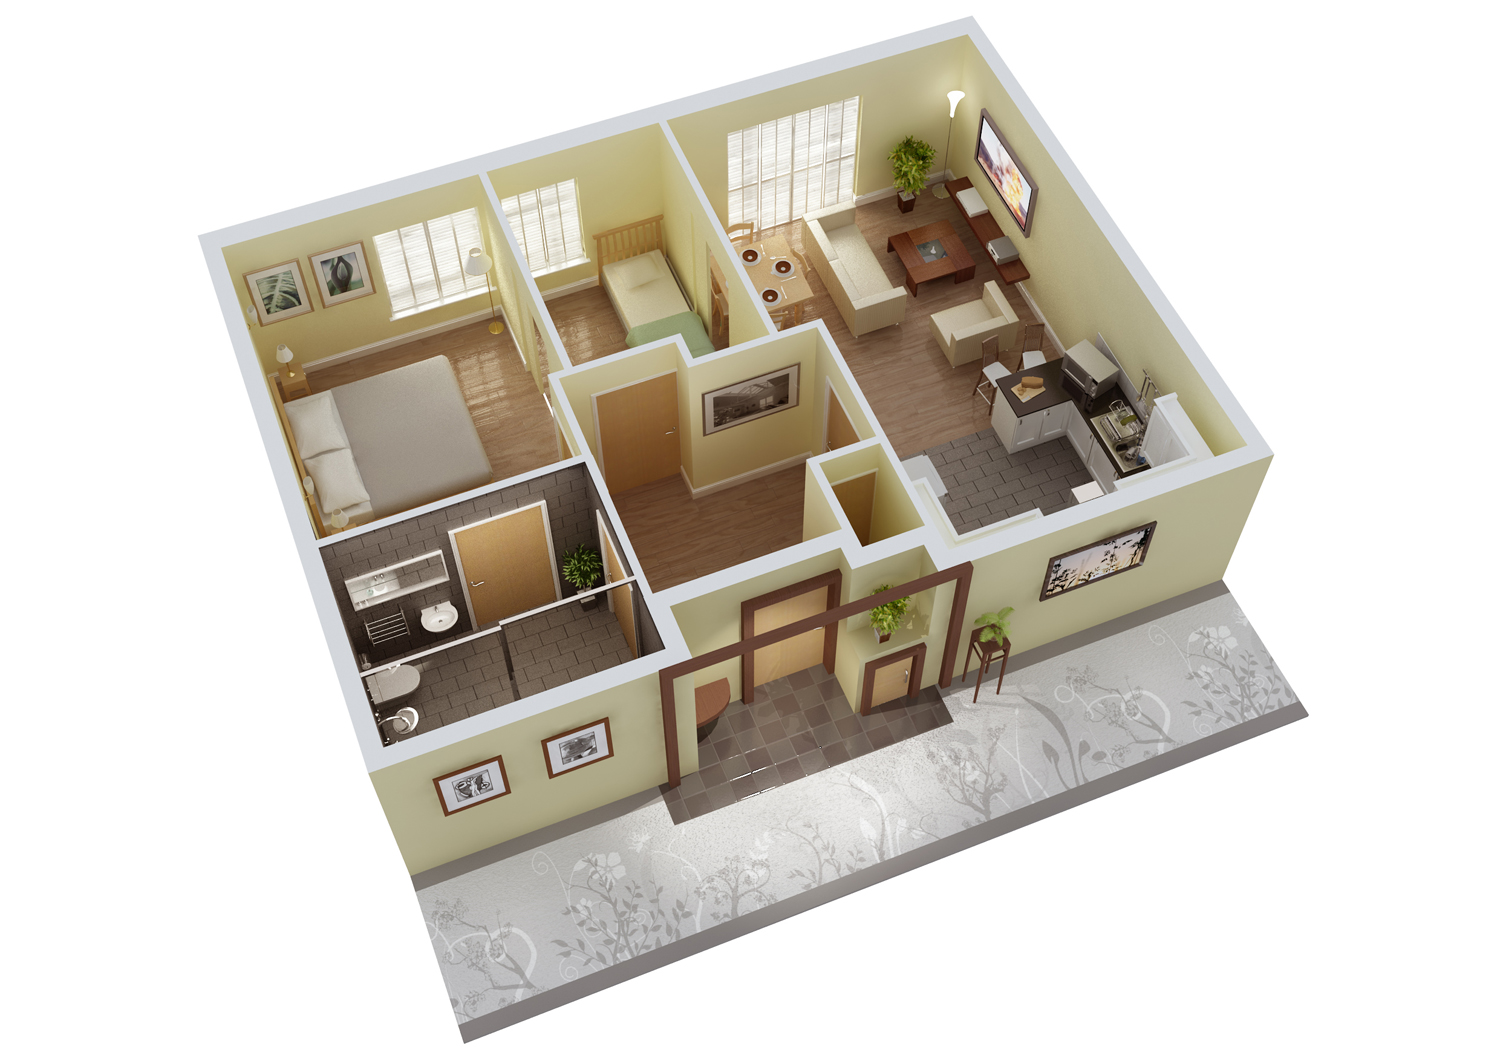 Home Design Ideas 3d: Mathematics Resources: Project: 3D Floor Plan